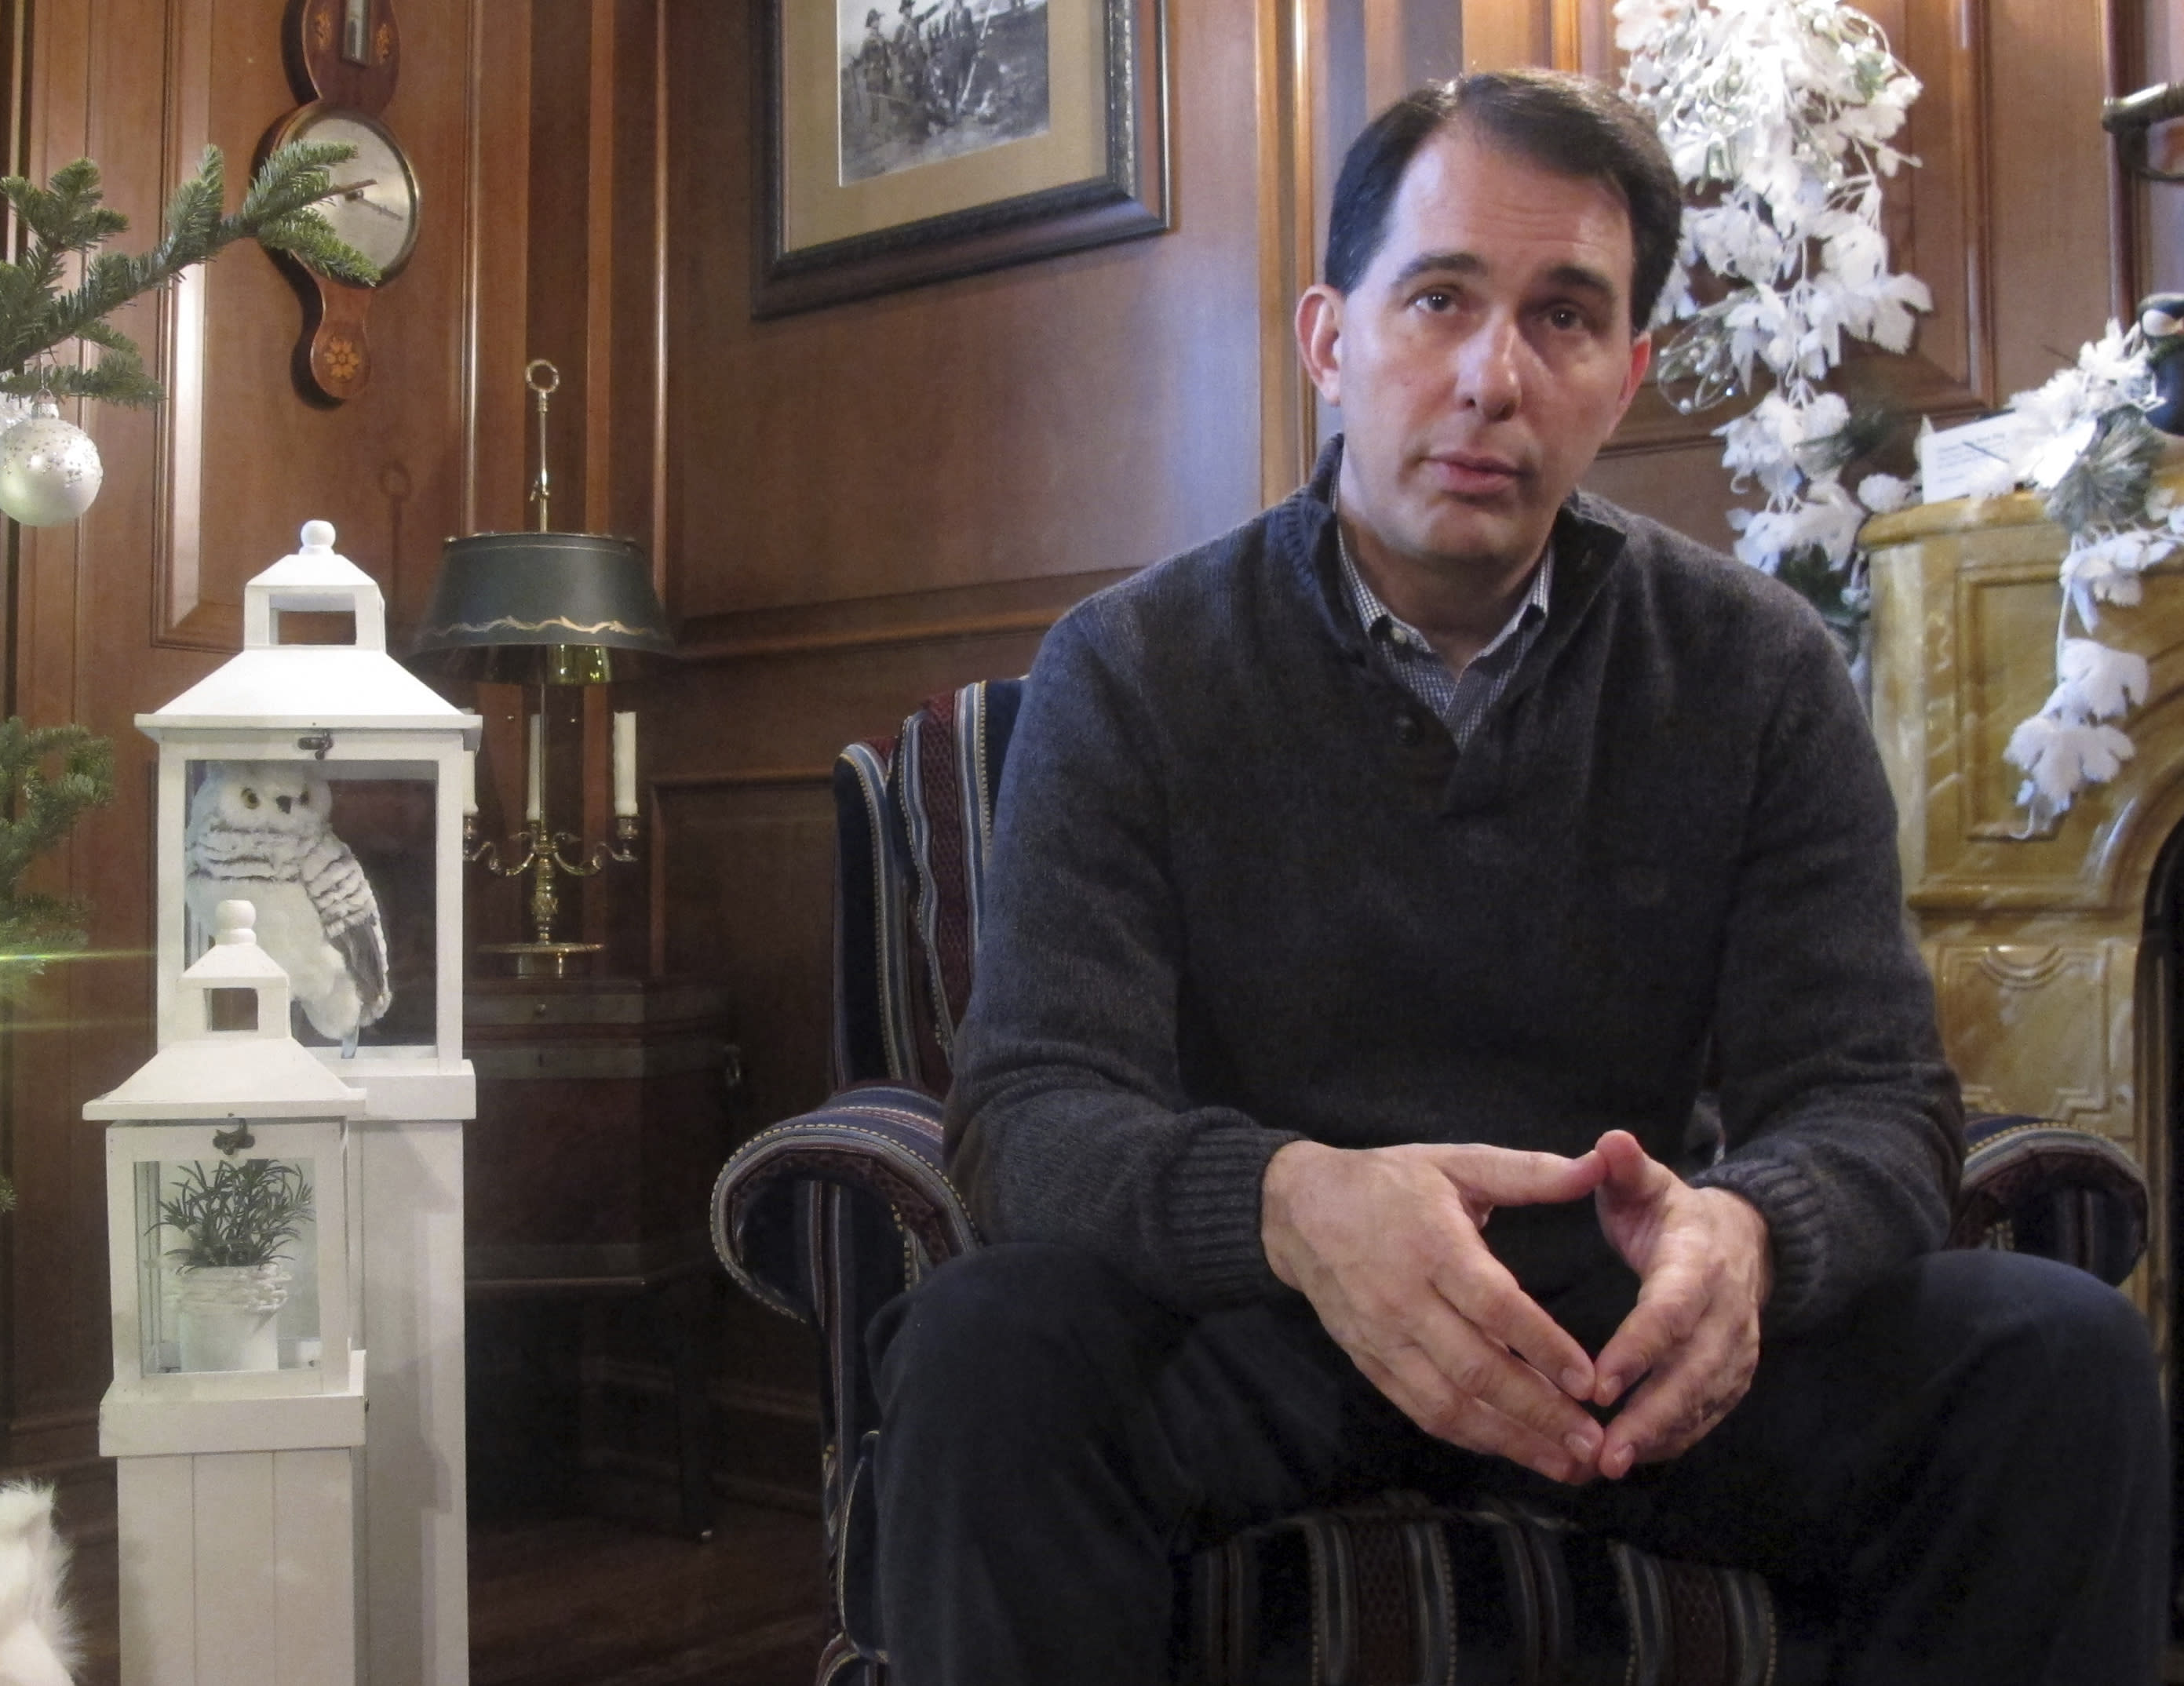 GOP governors who turned down Medicaid money have hands out